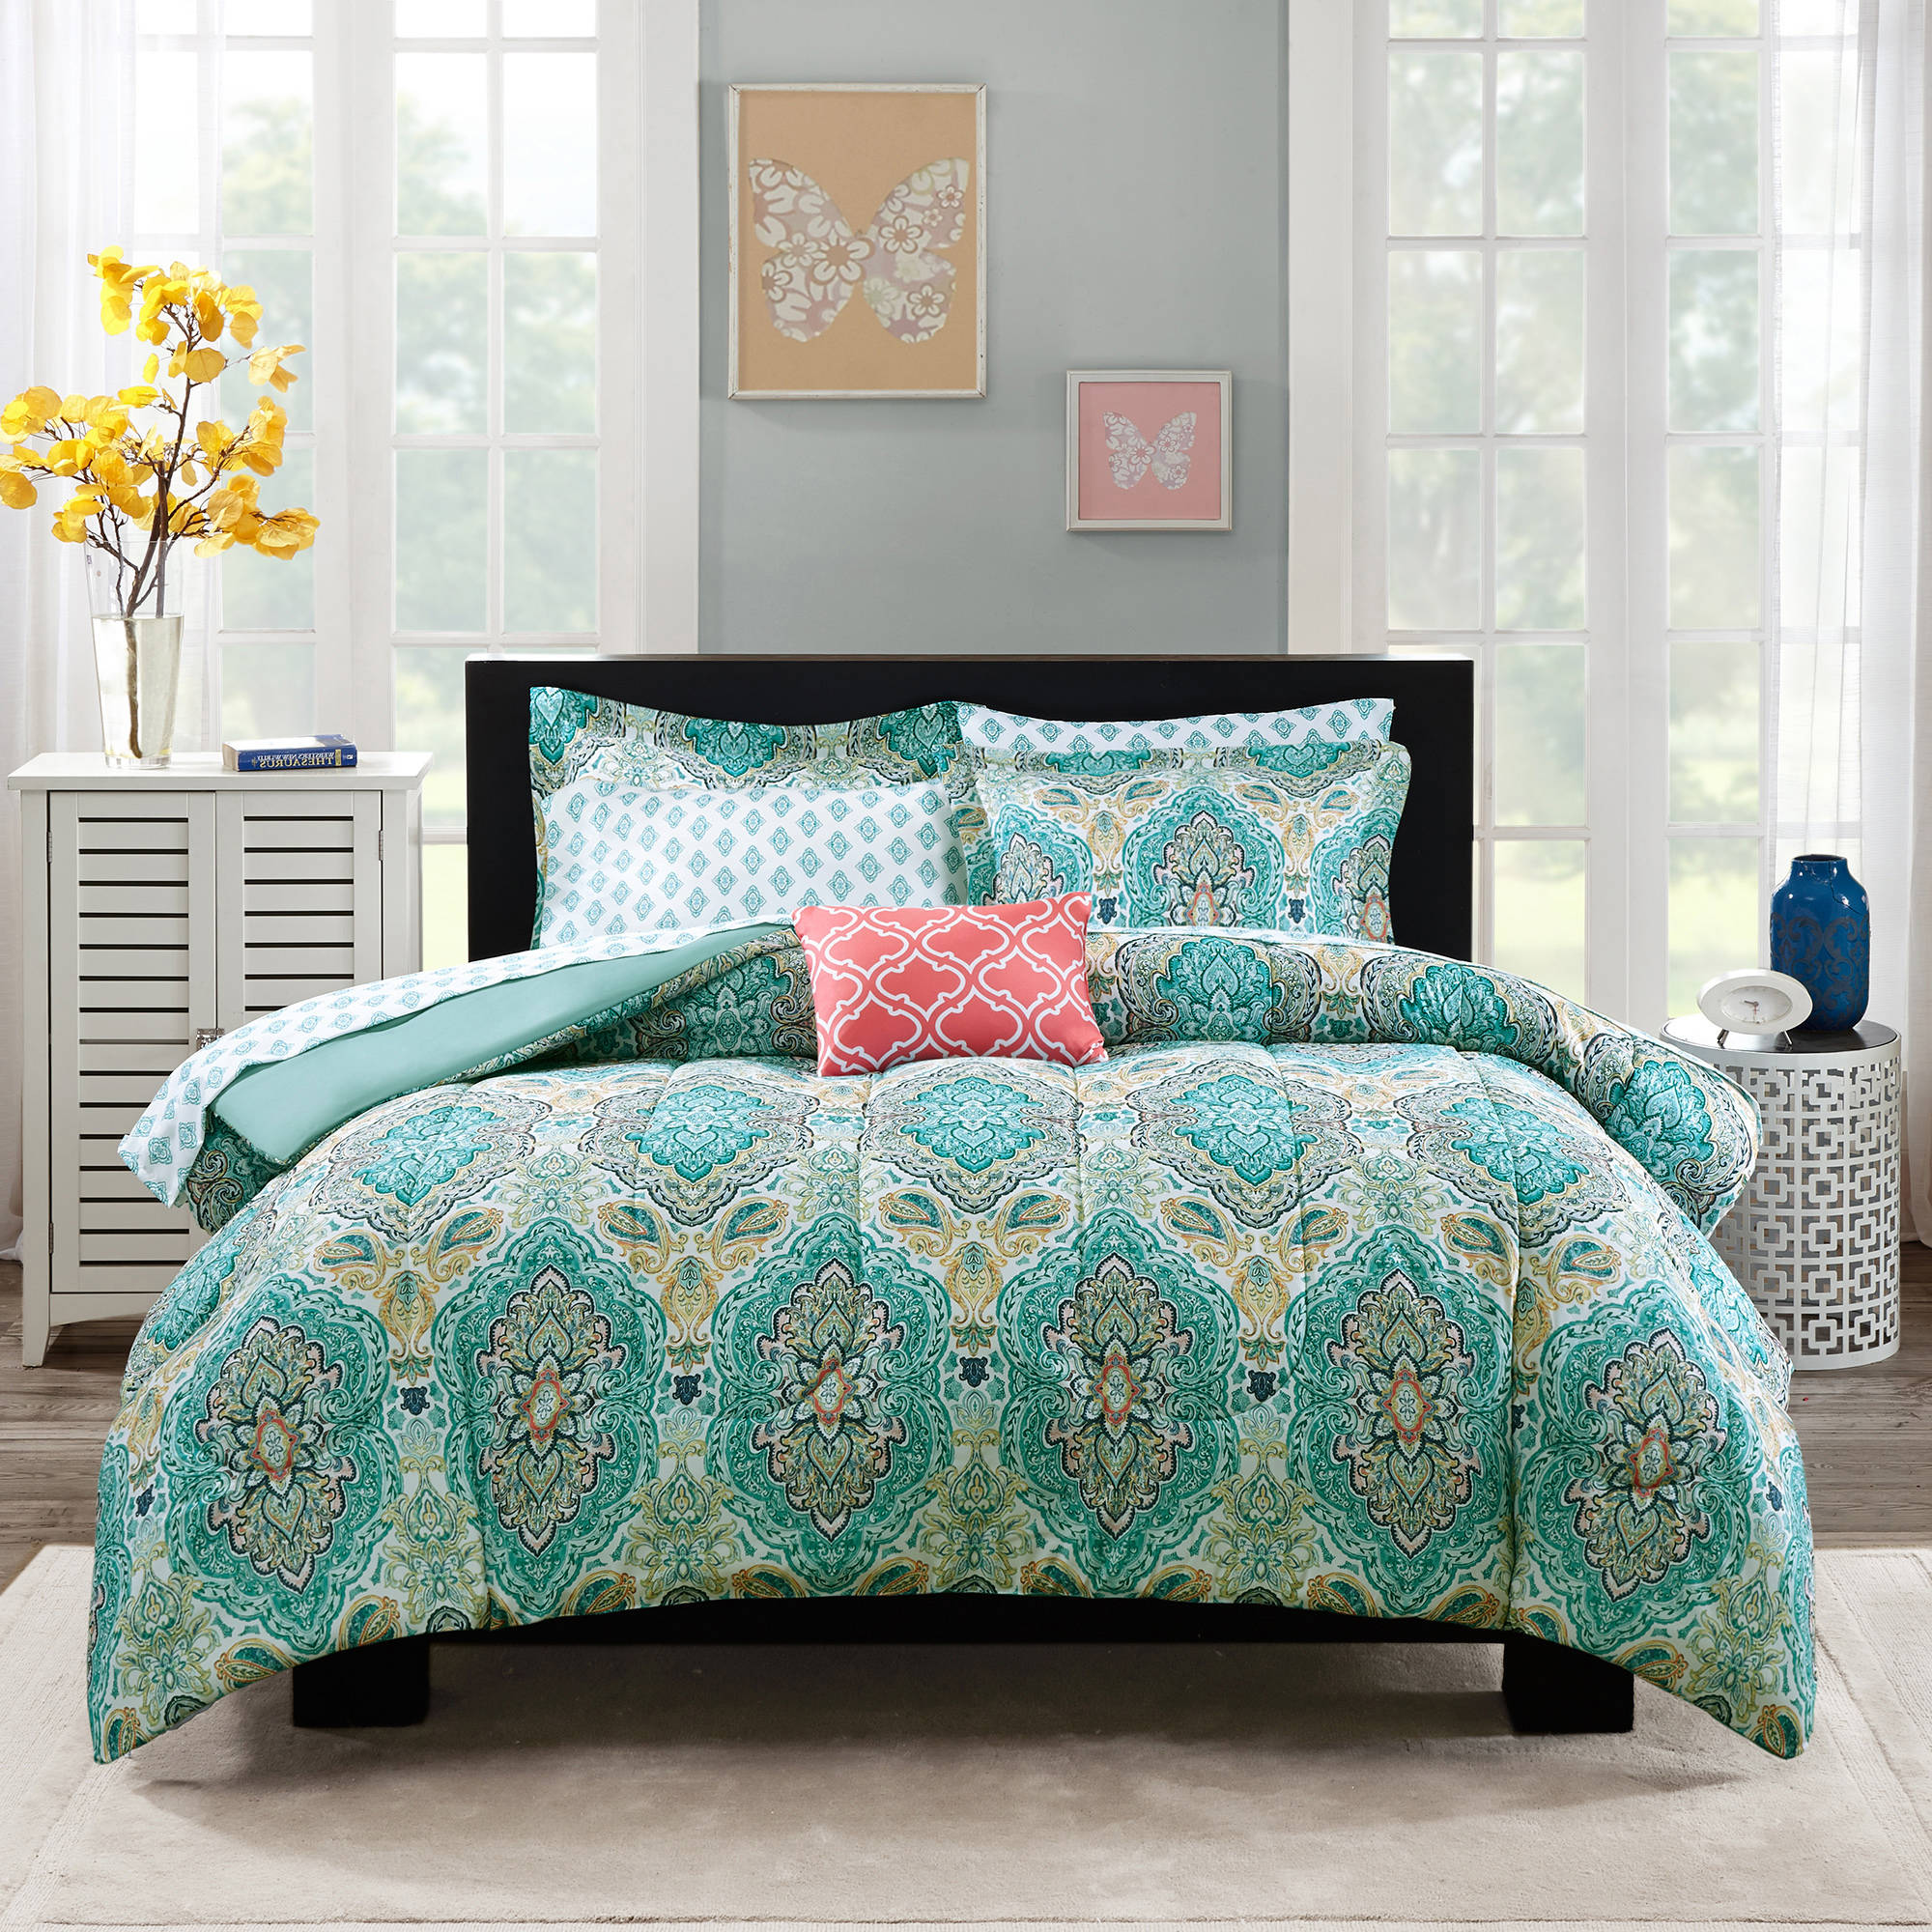 Genial Mainstays Monique Paisley Bed In A Bag Comforter Set   Walmart.com